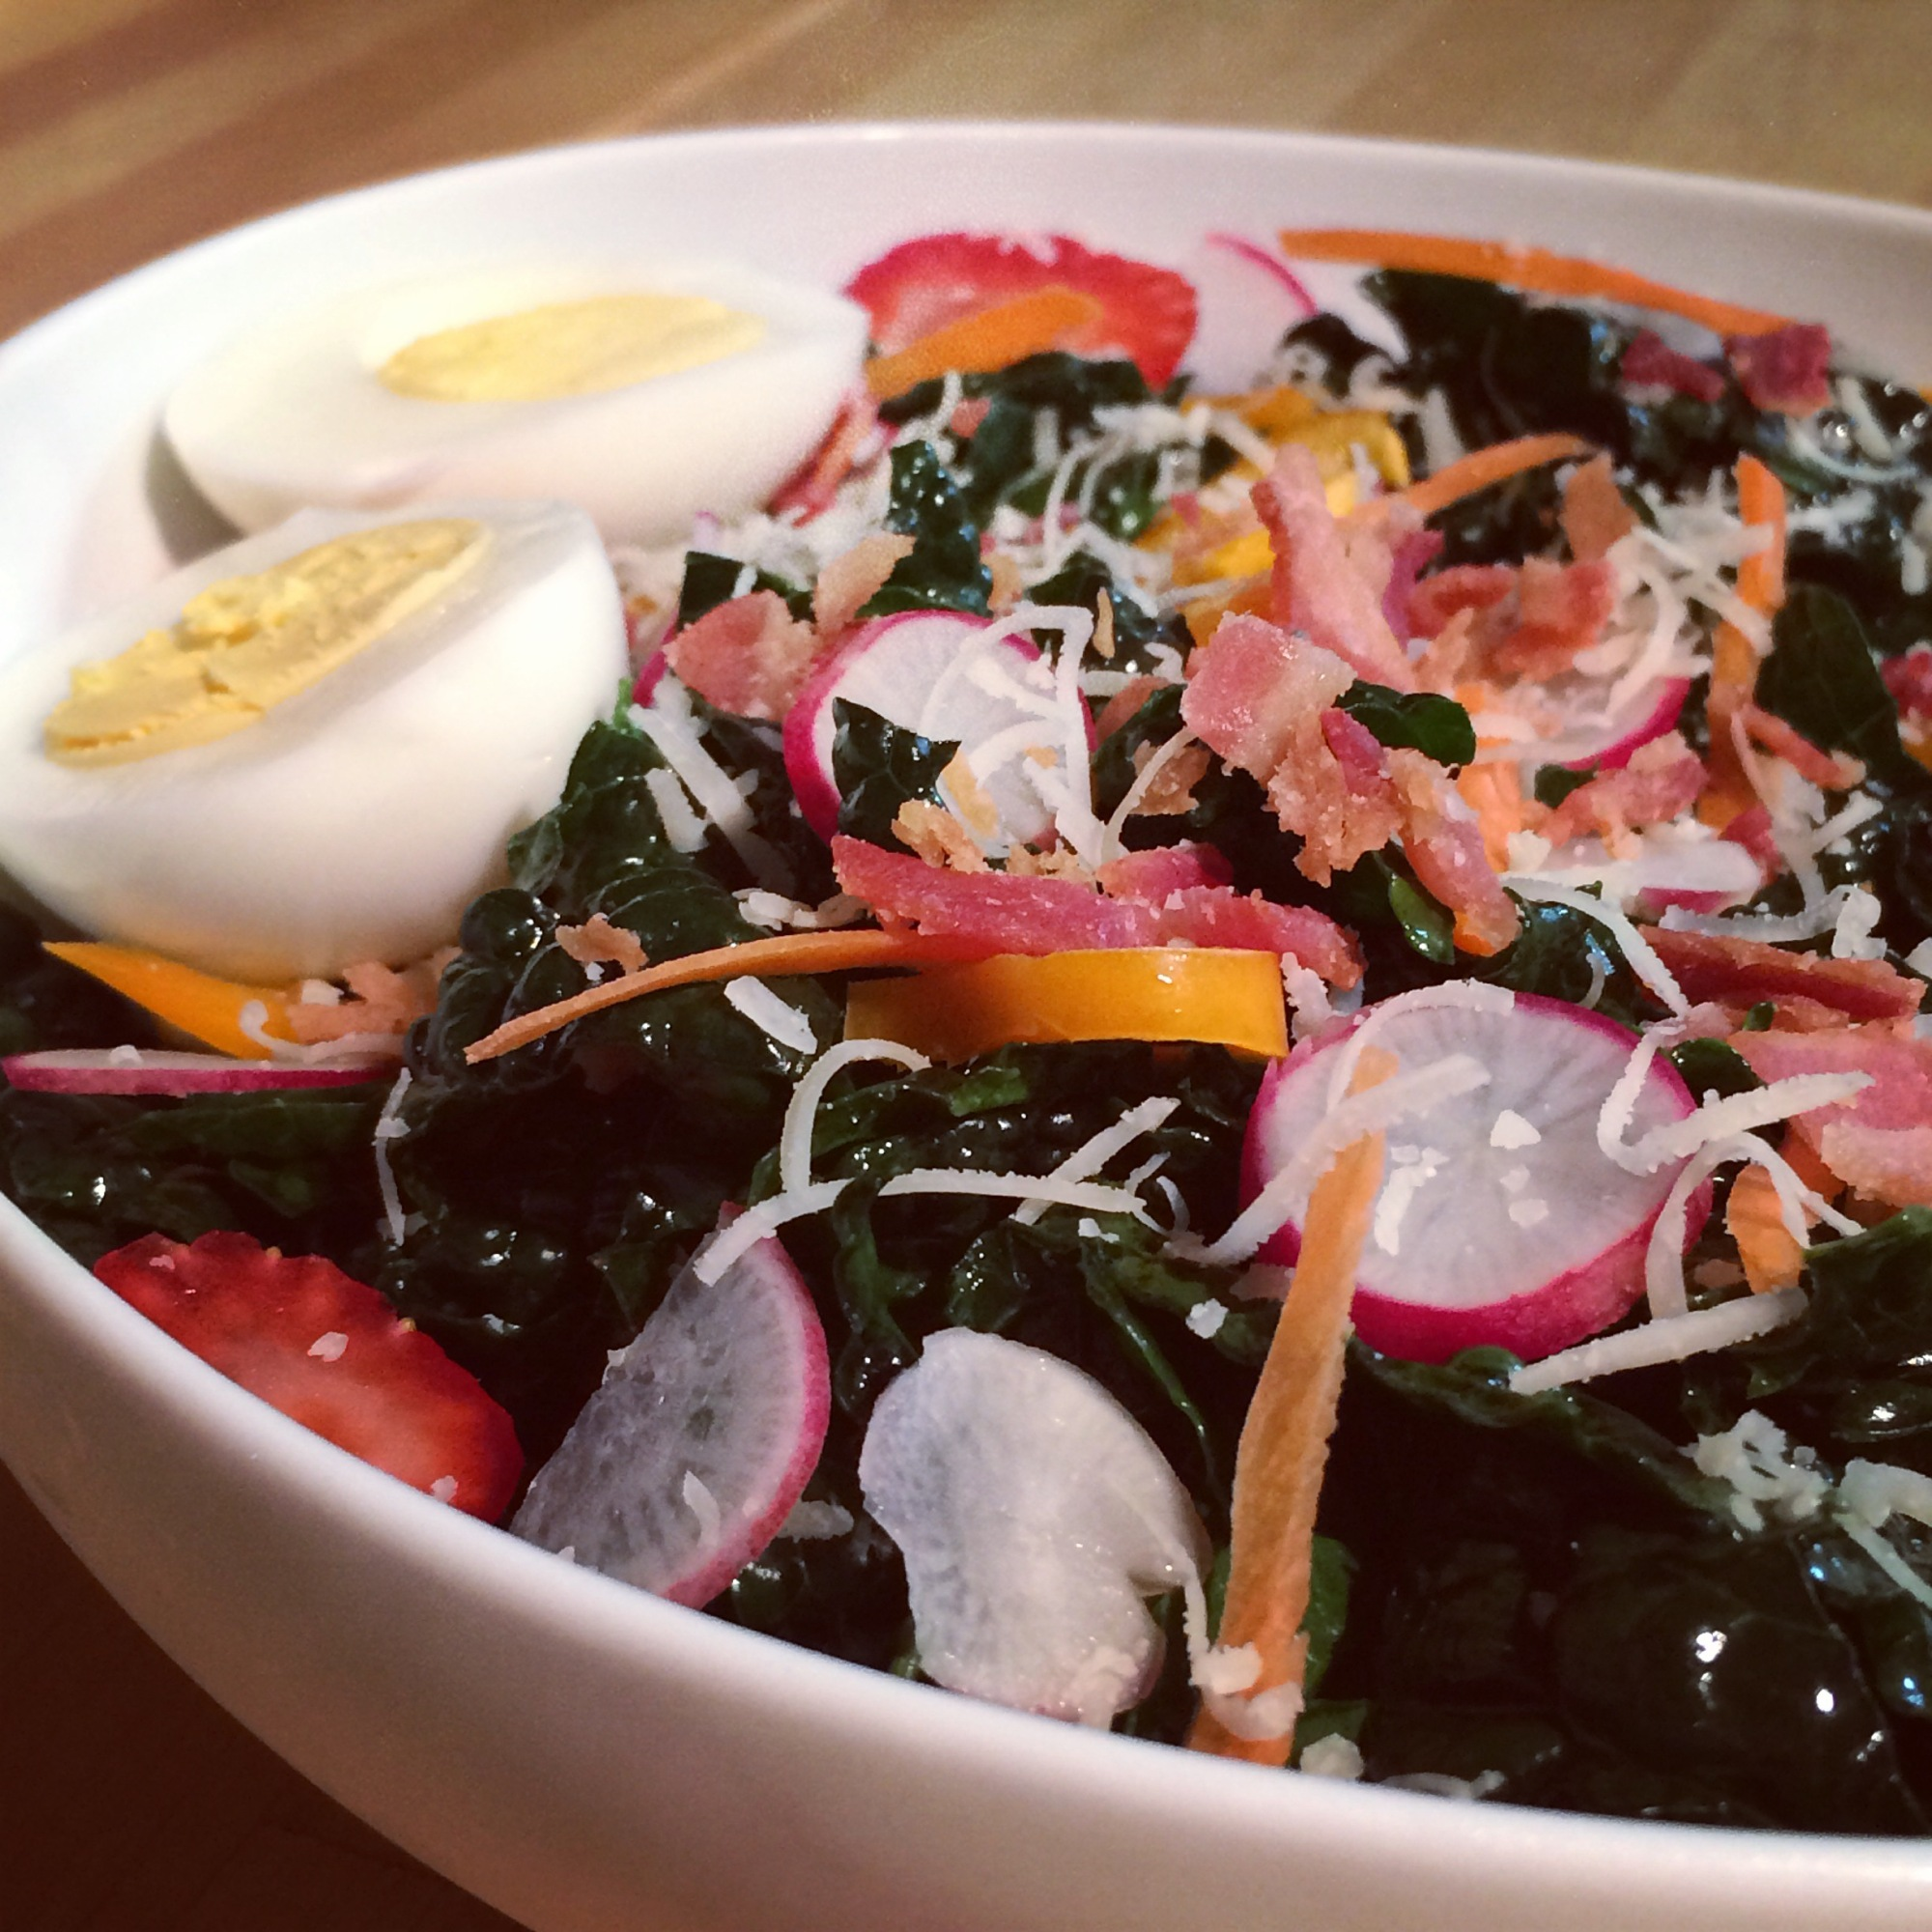 Kale salad with hard-boiled eggs